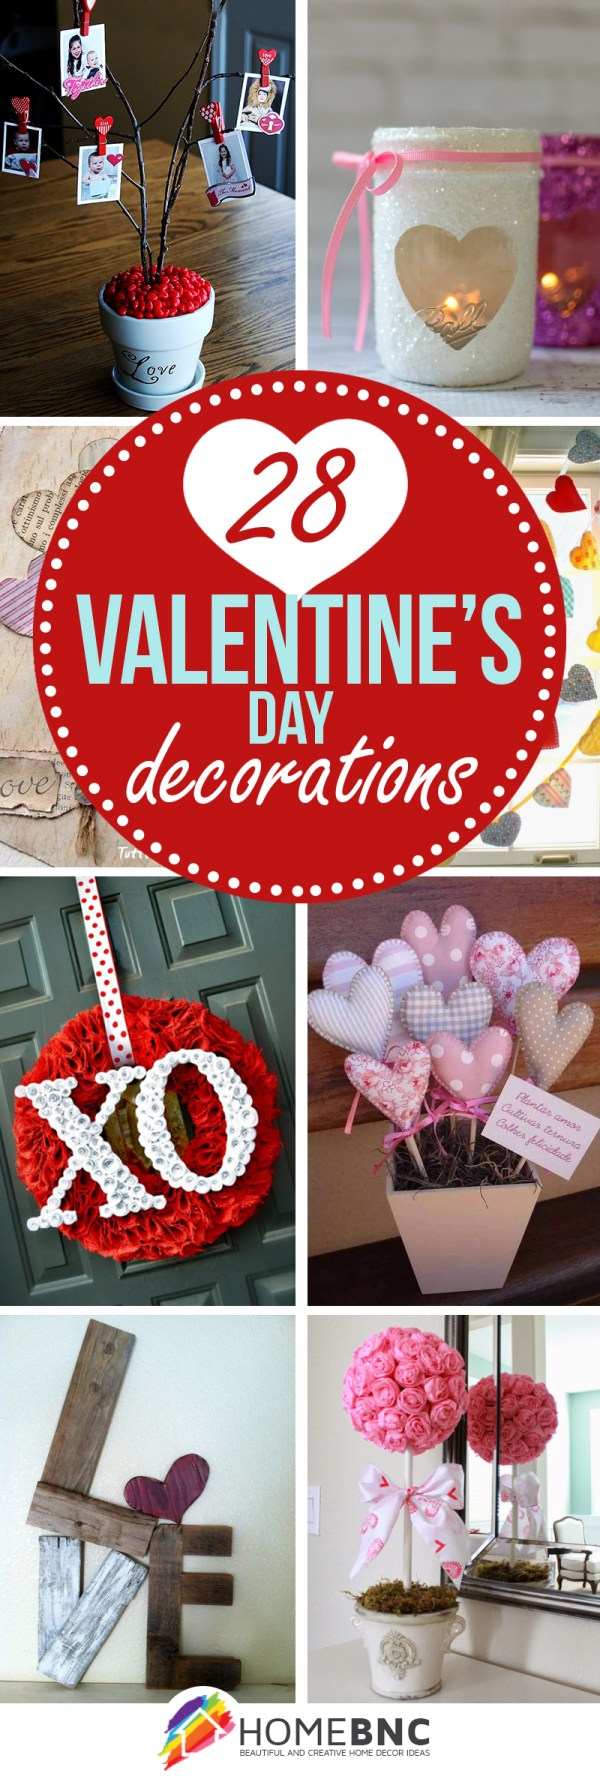 28 Best Valentine's Day Decor Ideas and Designs for 2018